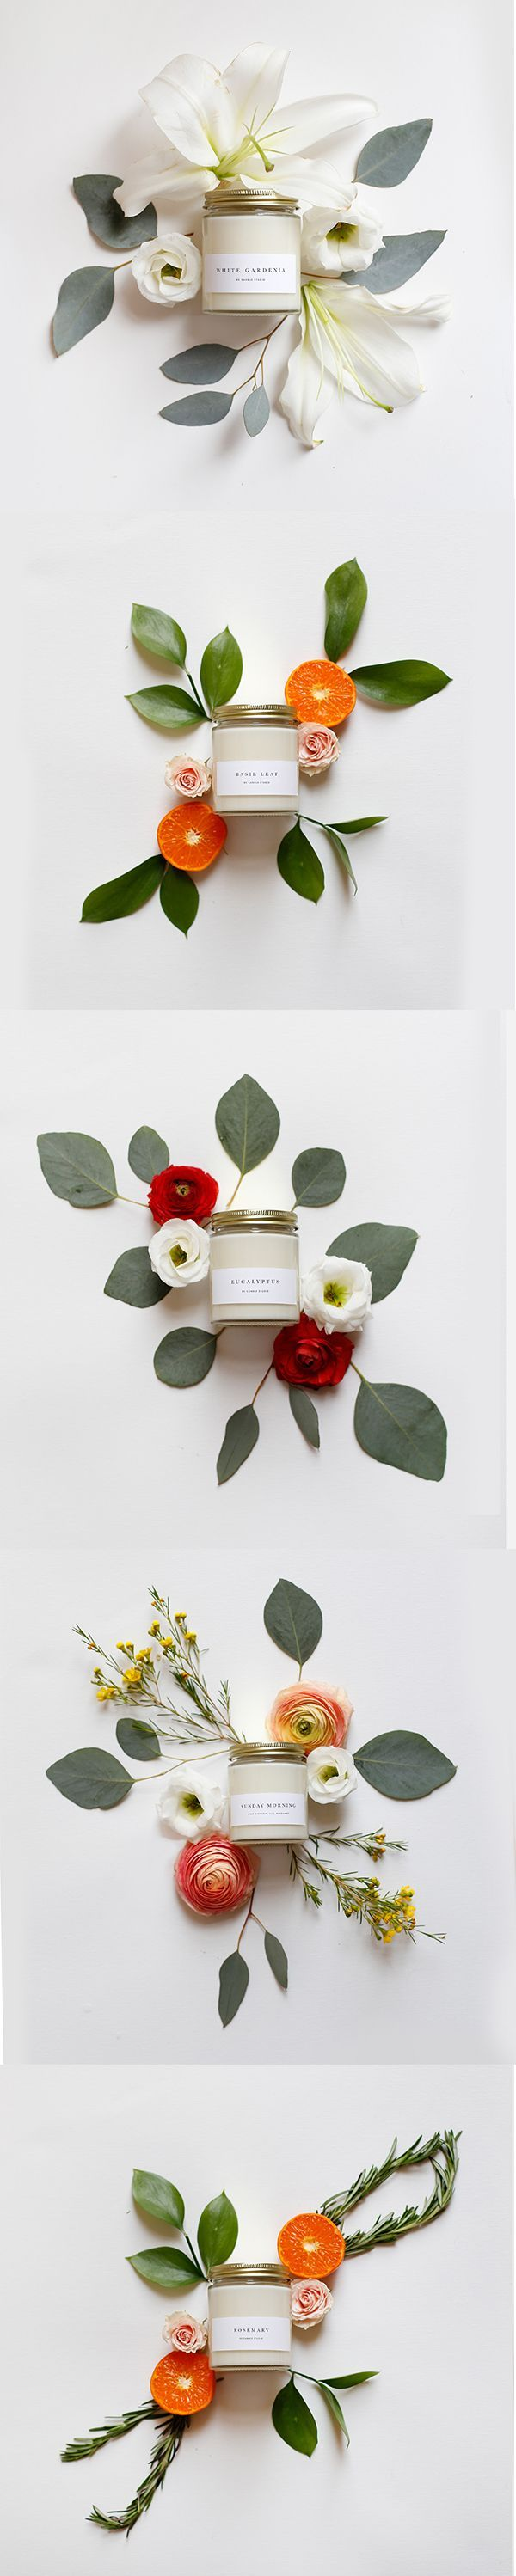 Scented Soy Candles Made In New York Candle Studio Photography Products Packaging Design